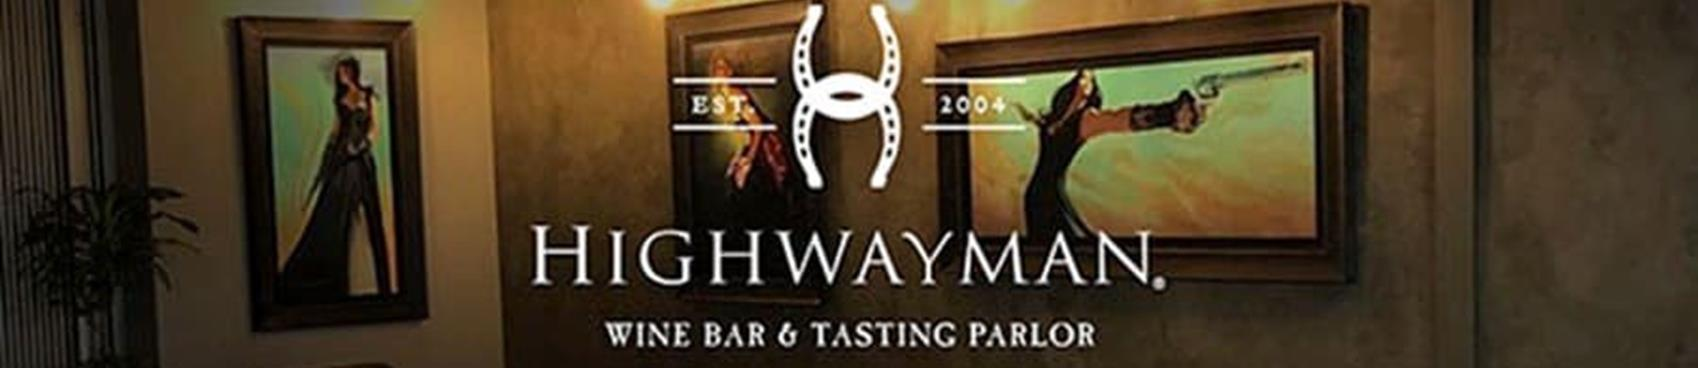 A image of Highwayman Wines